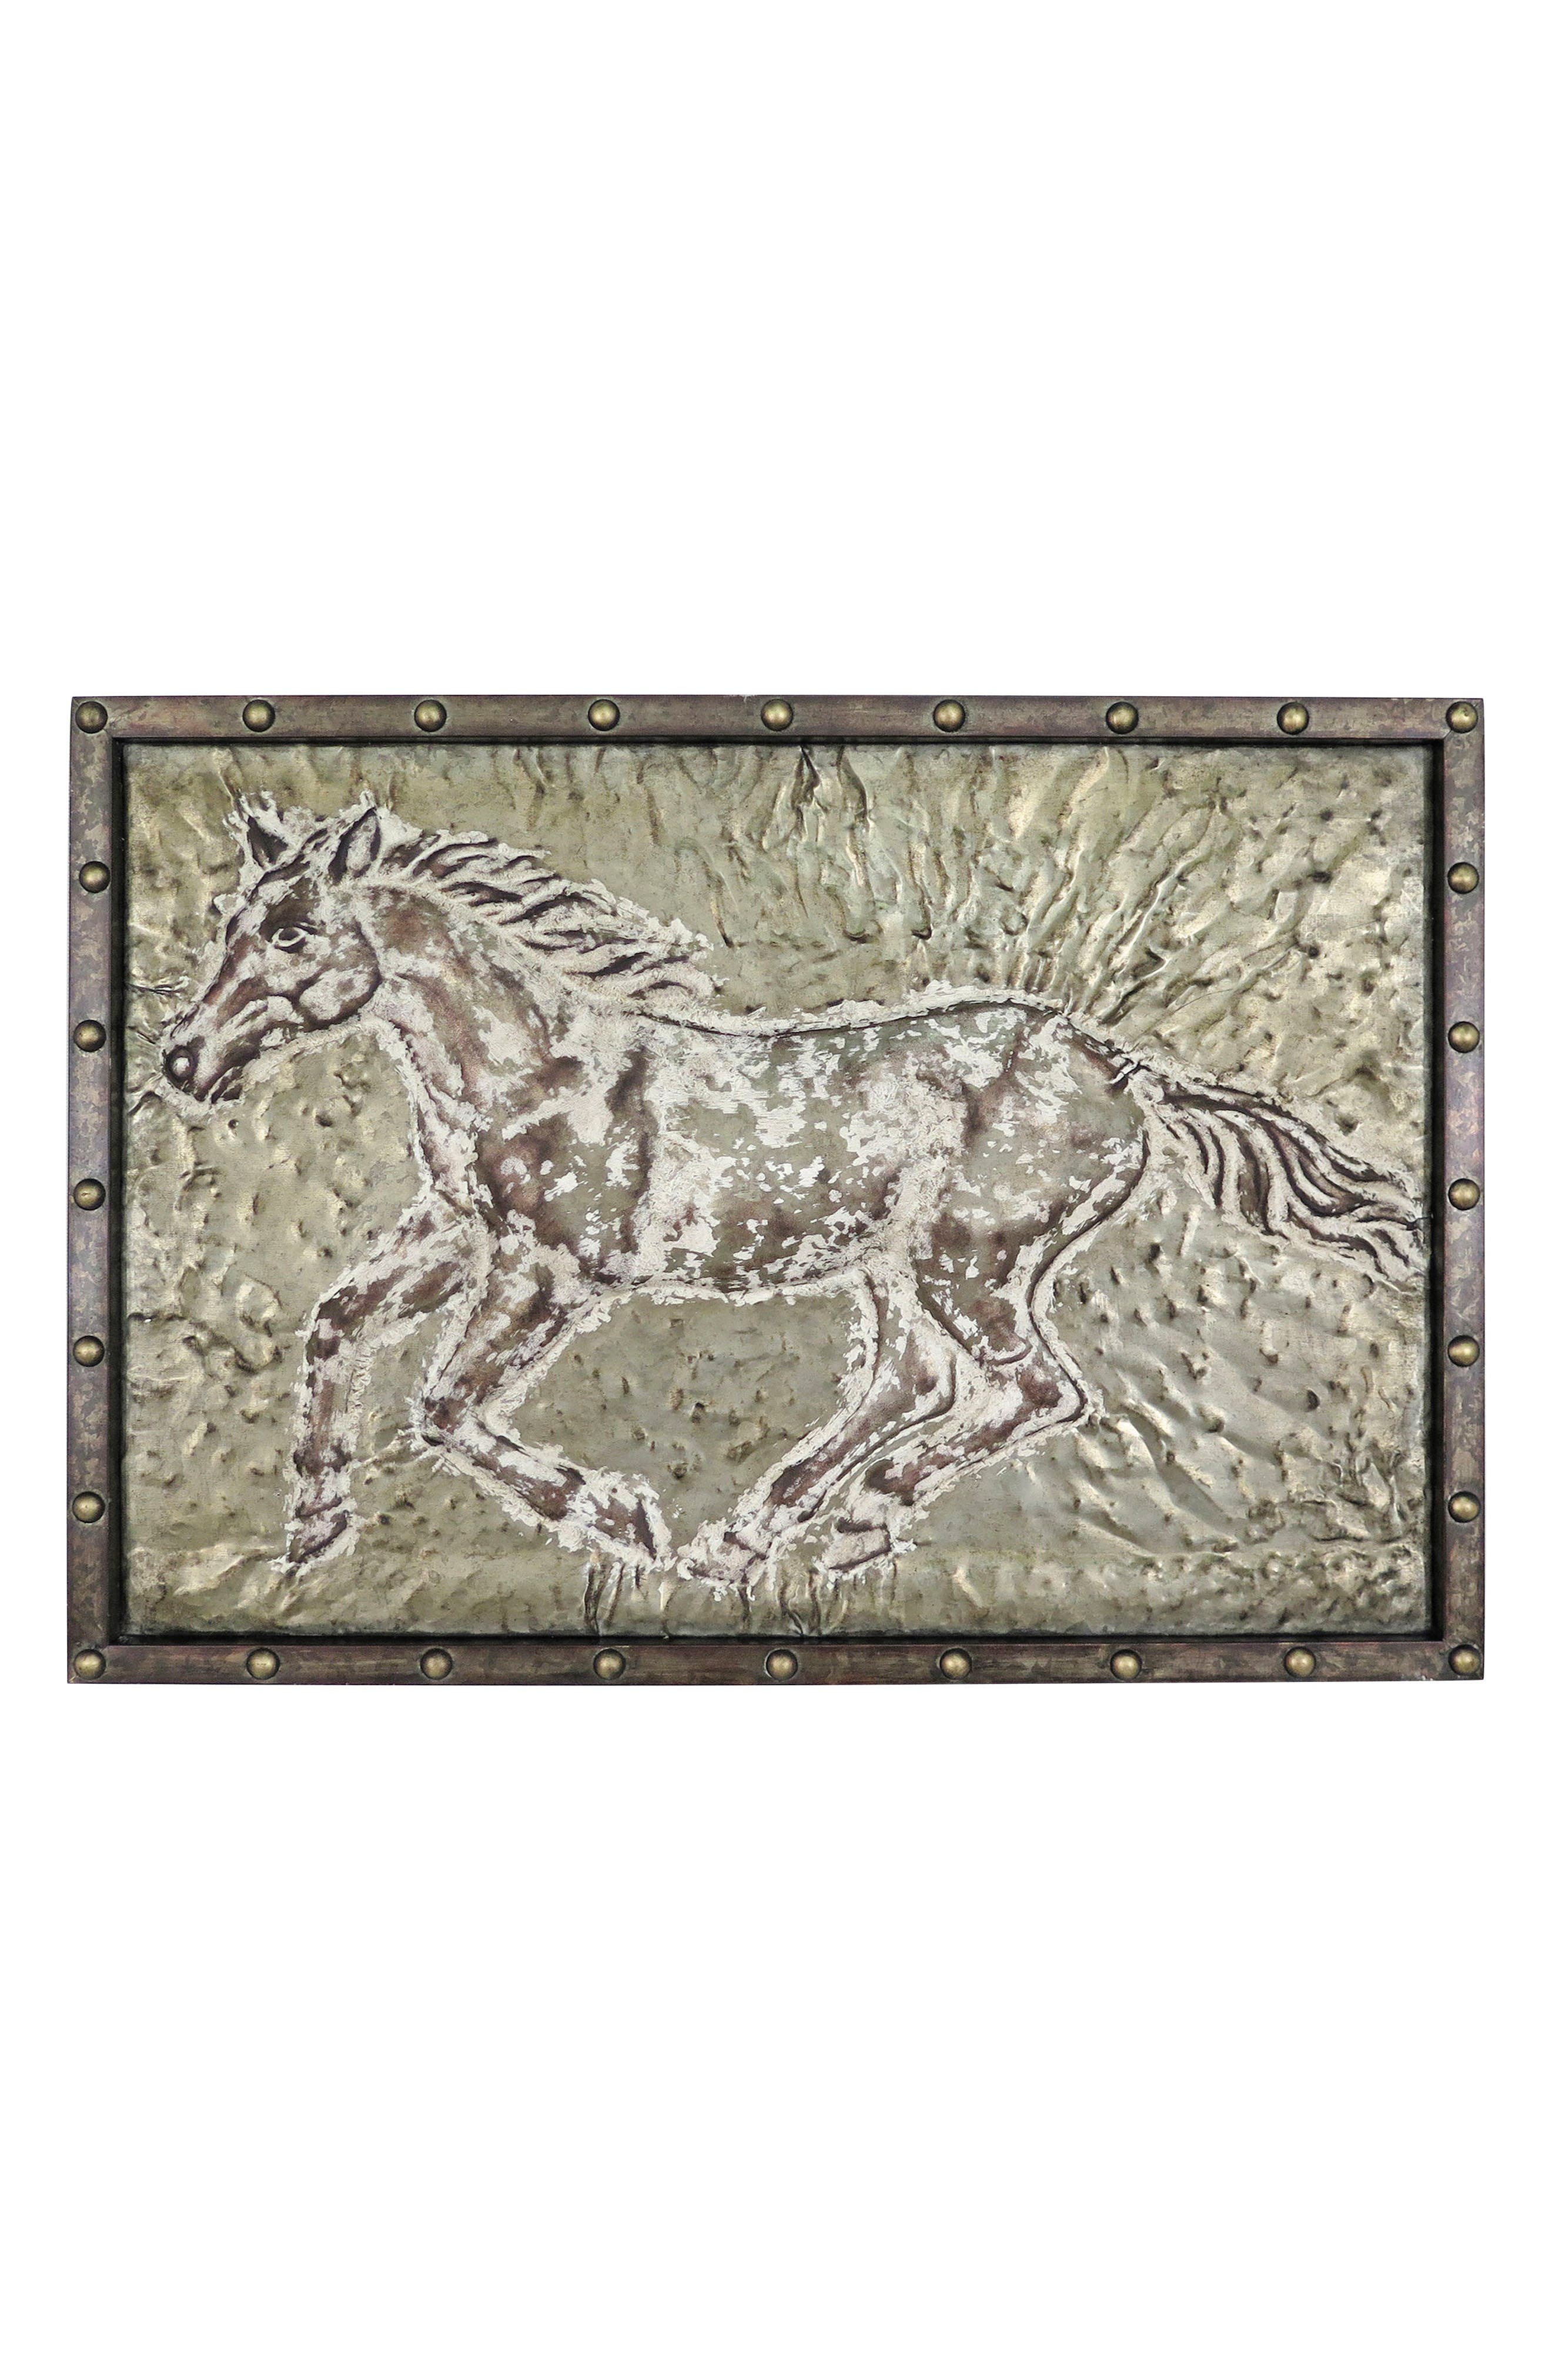 Main Image - Foreside Running Horse Wall Art